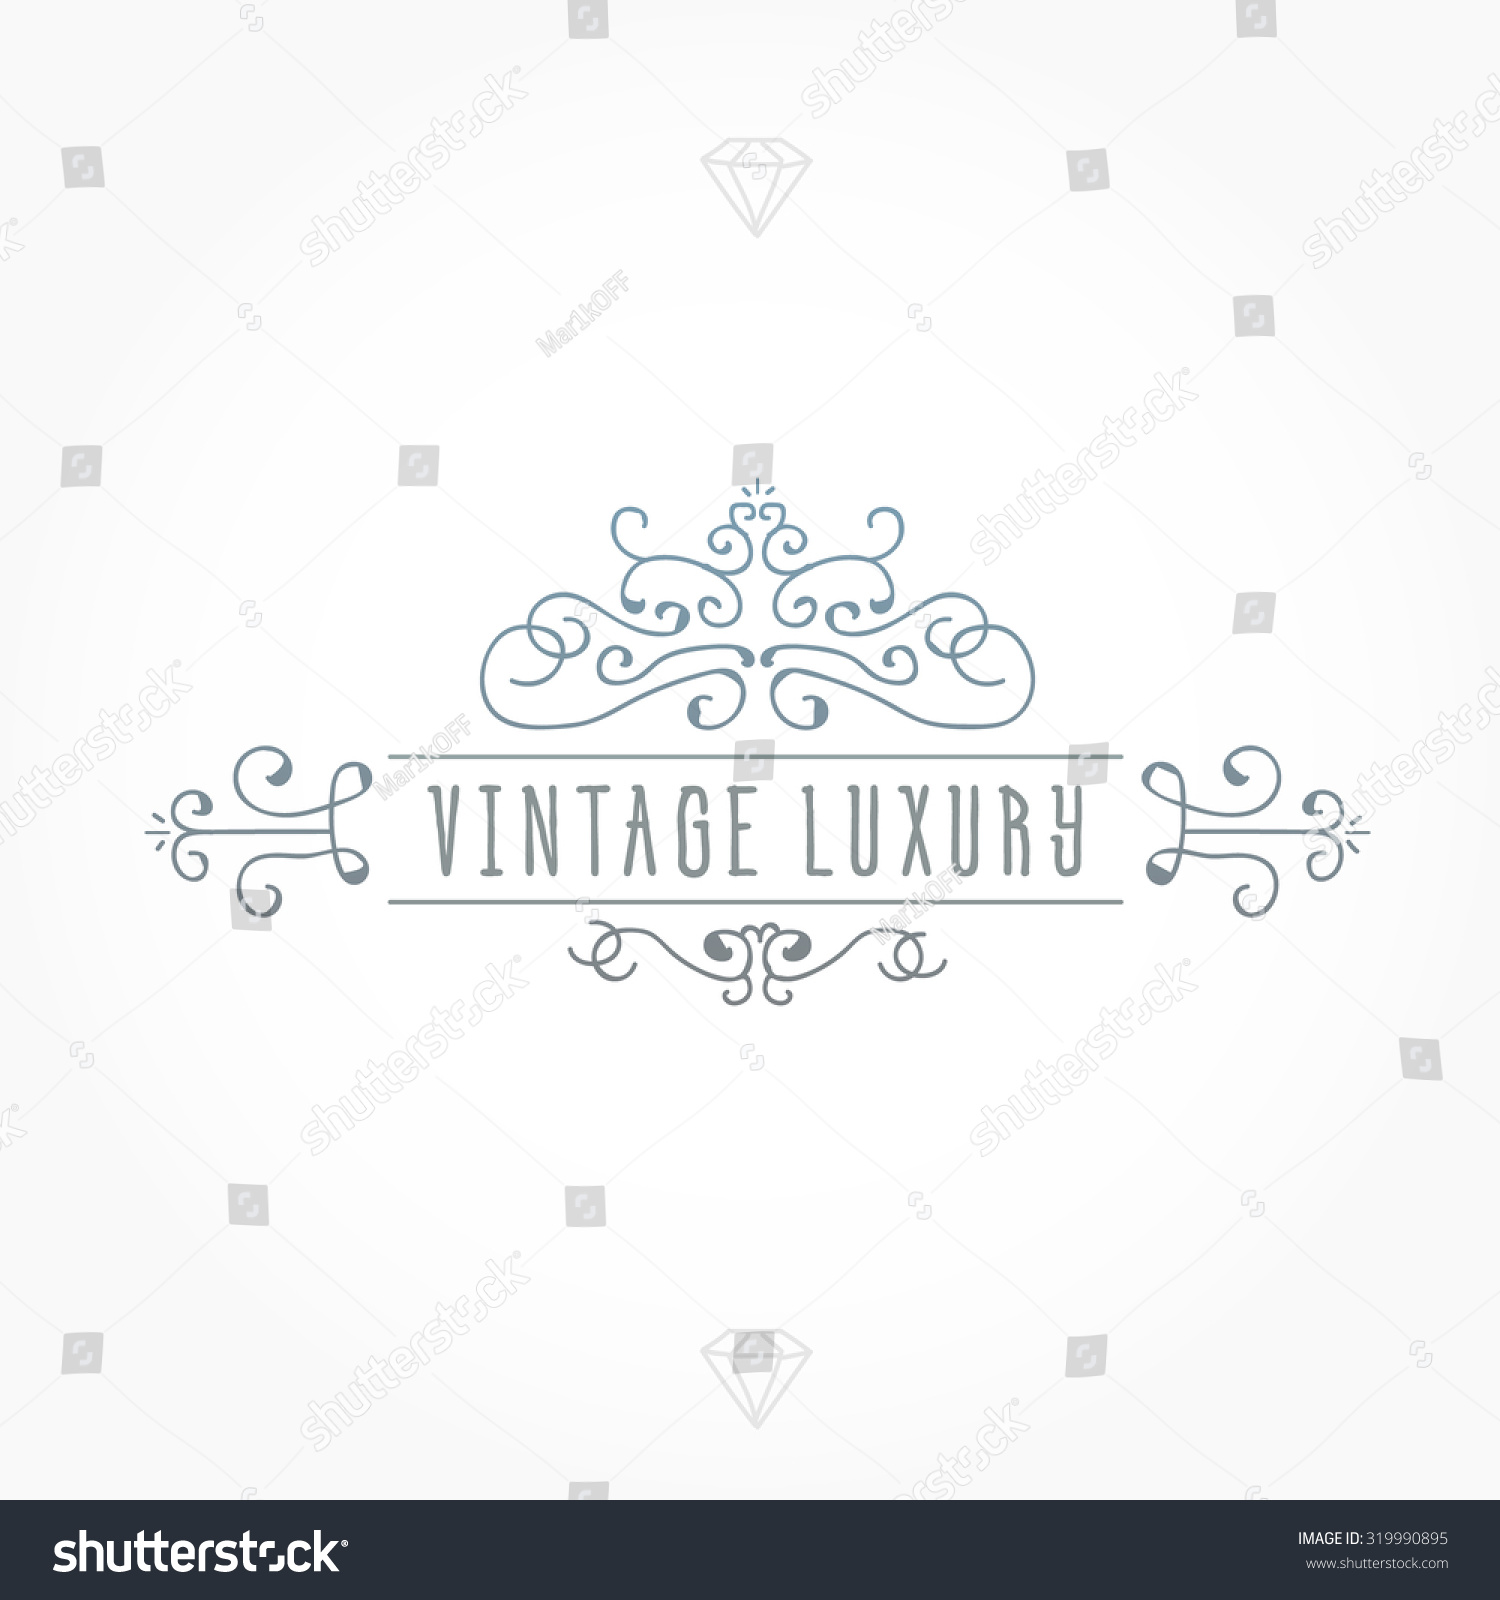 Vintage Frame Luxury Logos Greeting Cards Stock Vector 319990895